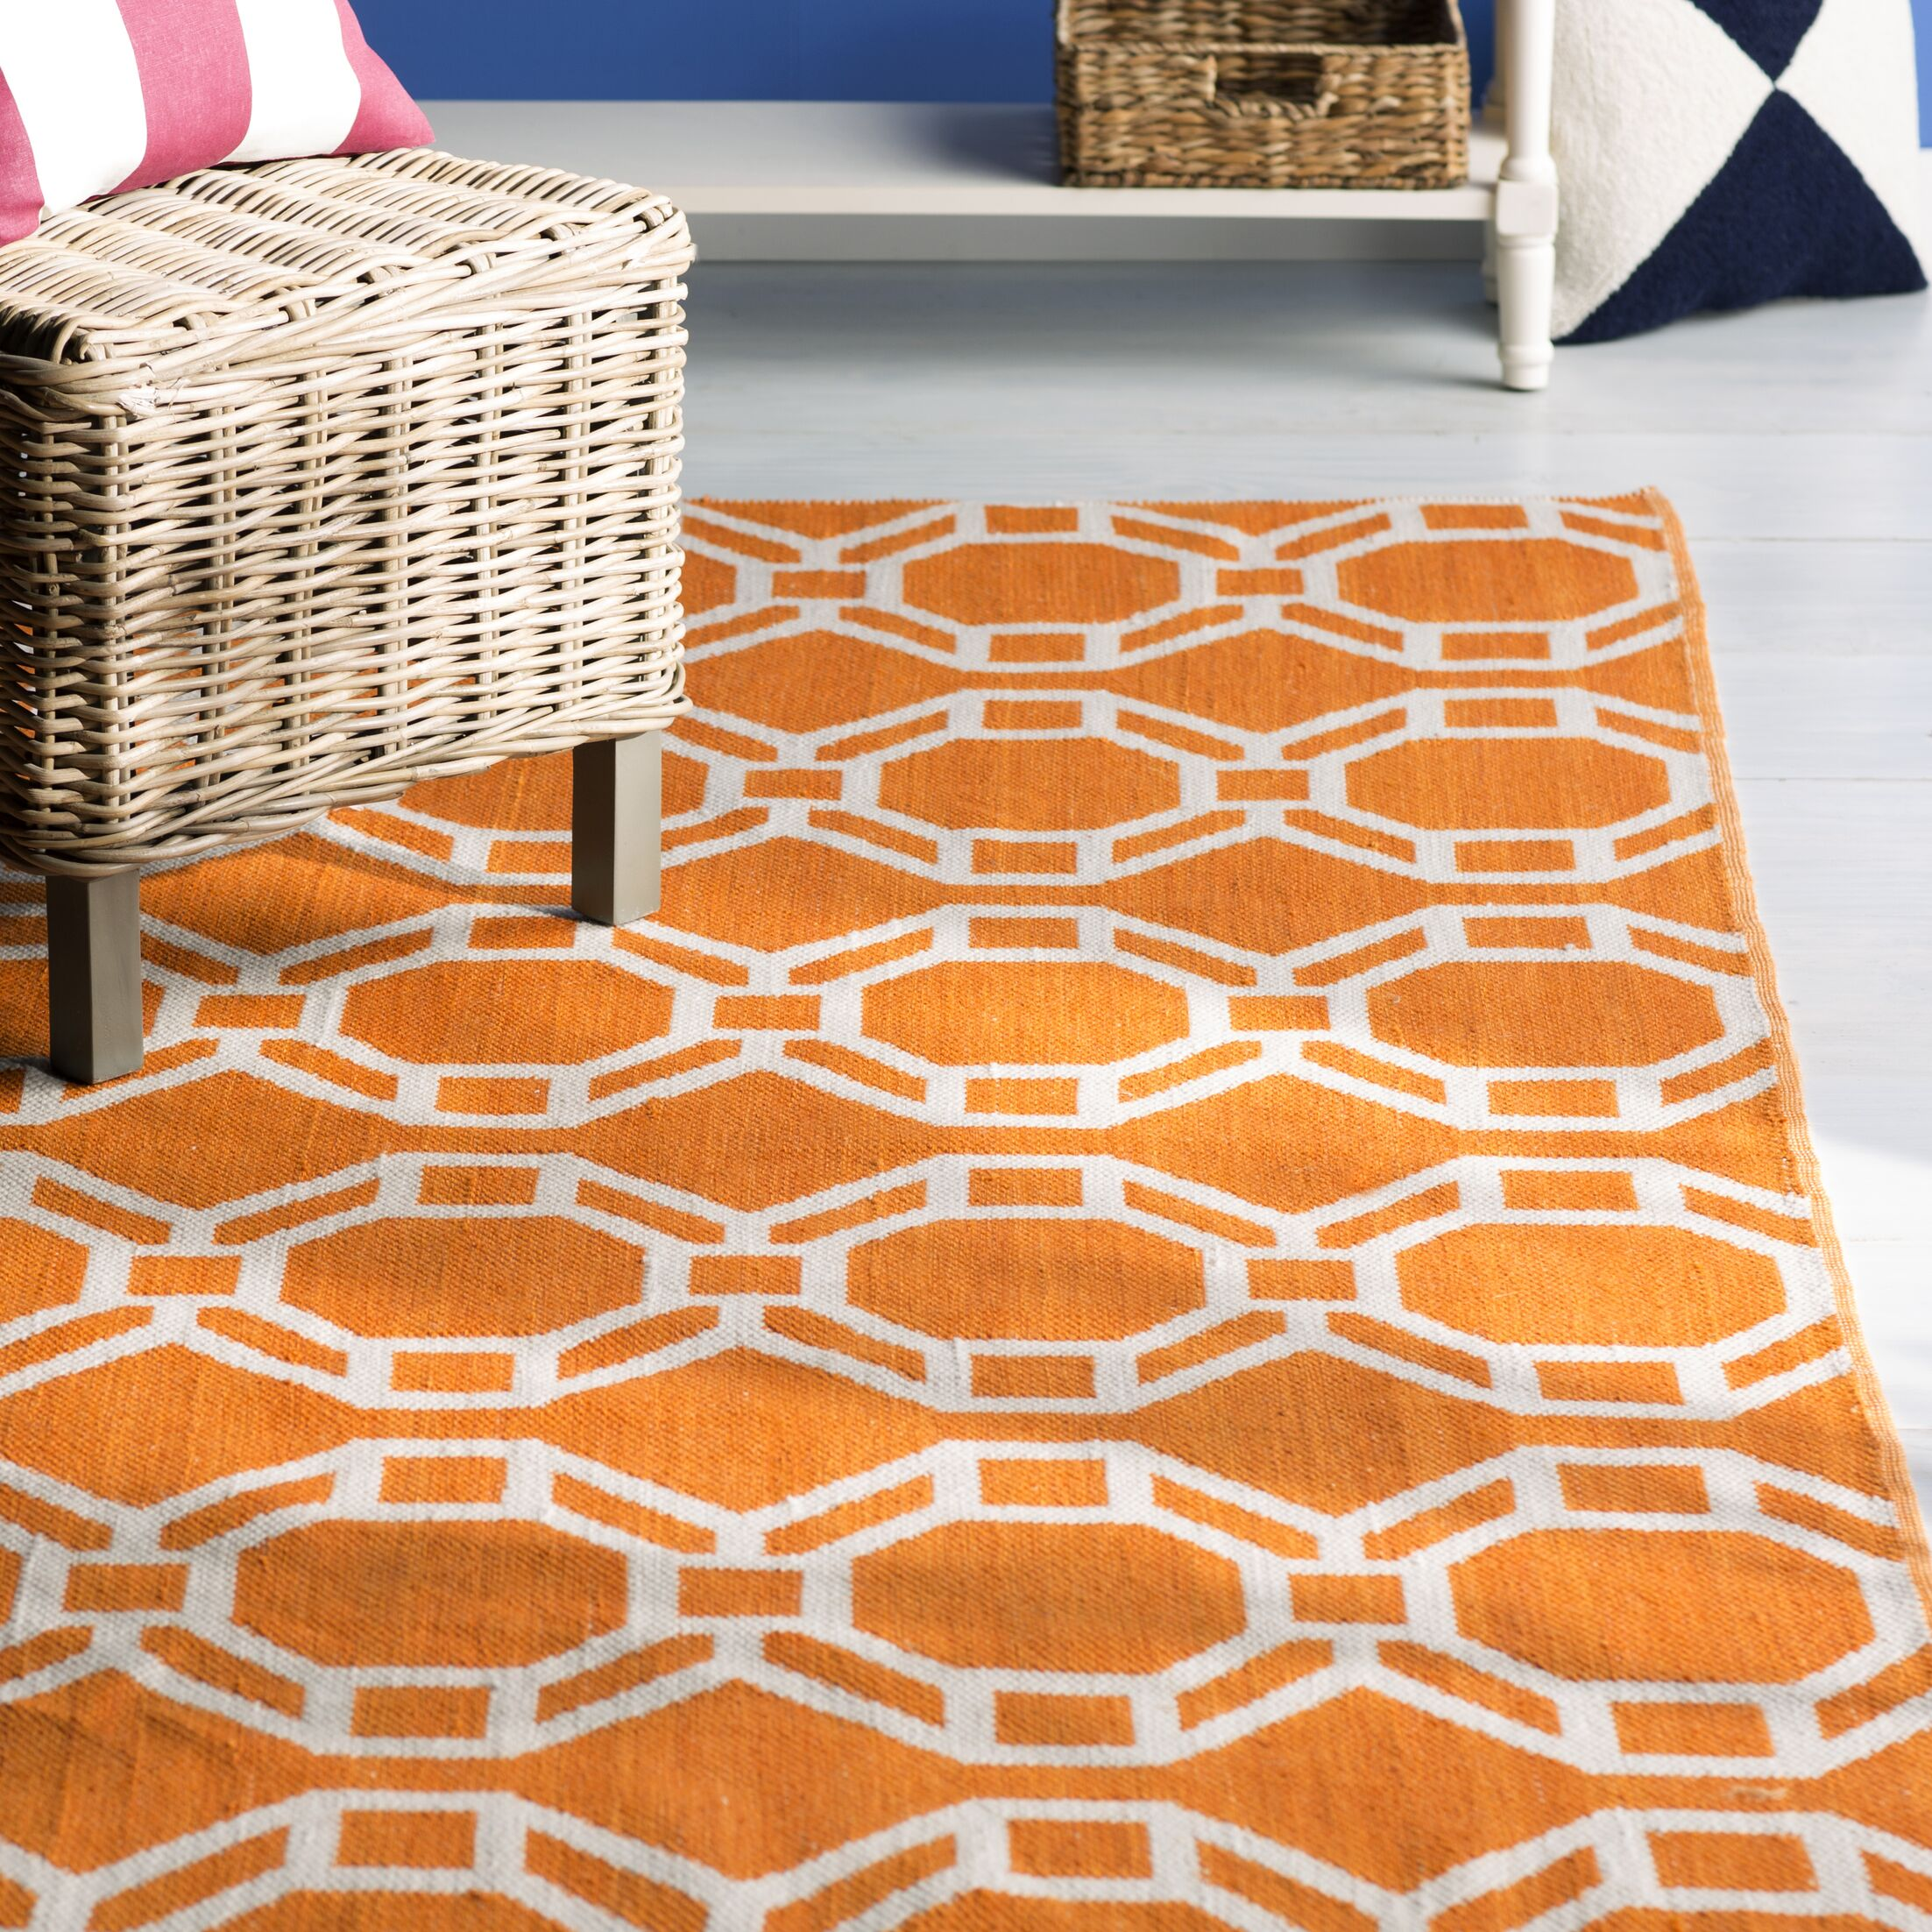 Fowler Orange/Cream Indoor/Outdoor Area Rug Rug Size: Rectangle 5' x 7'6